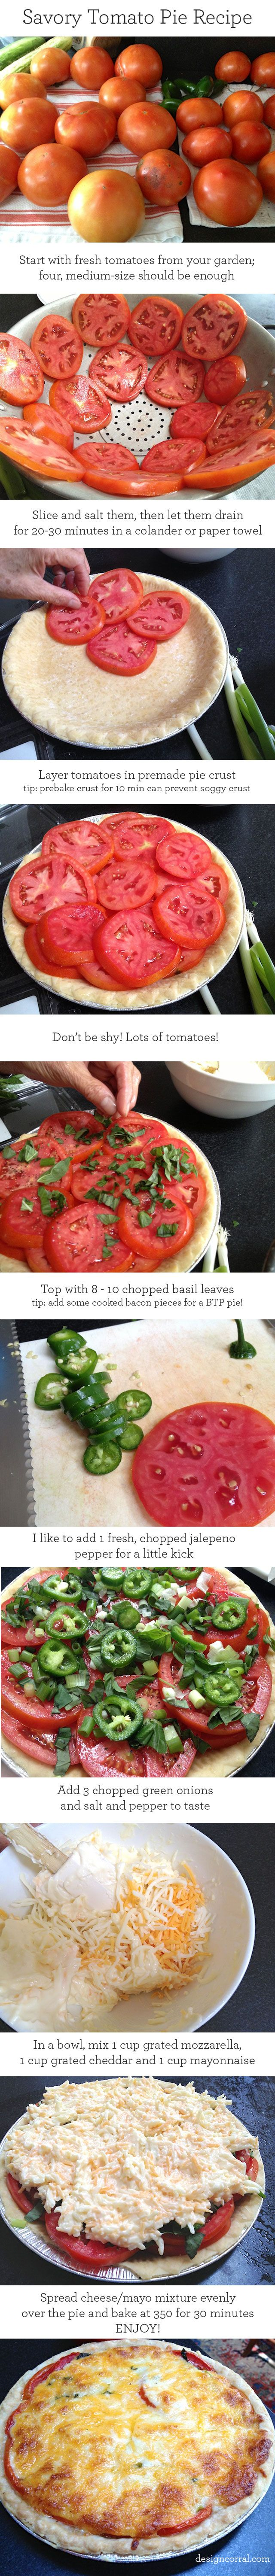 tomato pie recipeSavory Tomatoes, Pie Crusts, Fresh Tomatoes, Pie ...